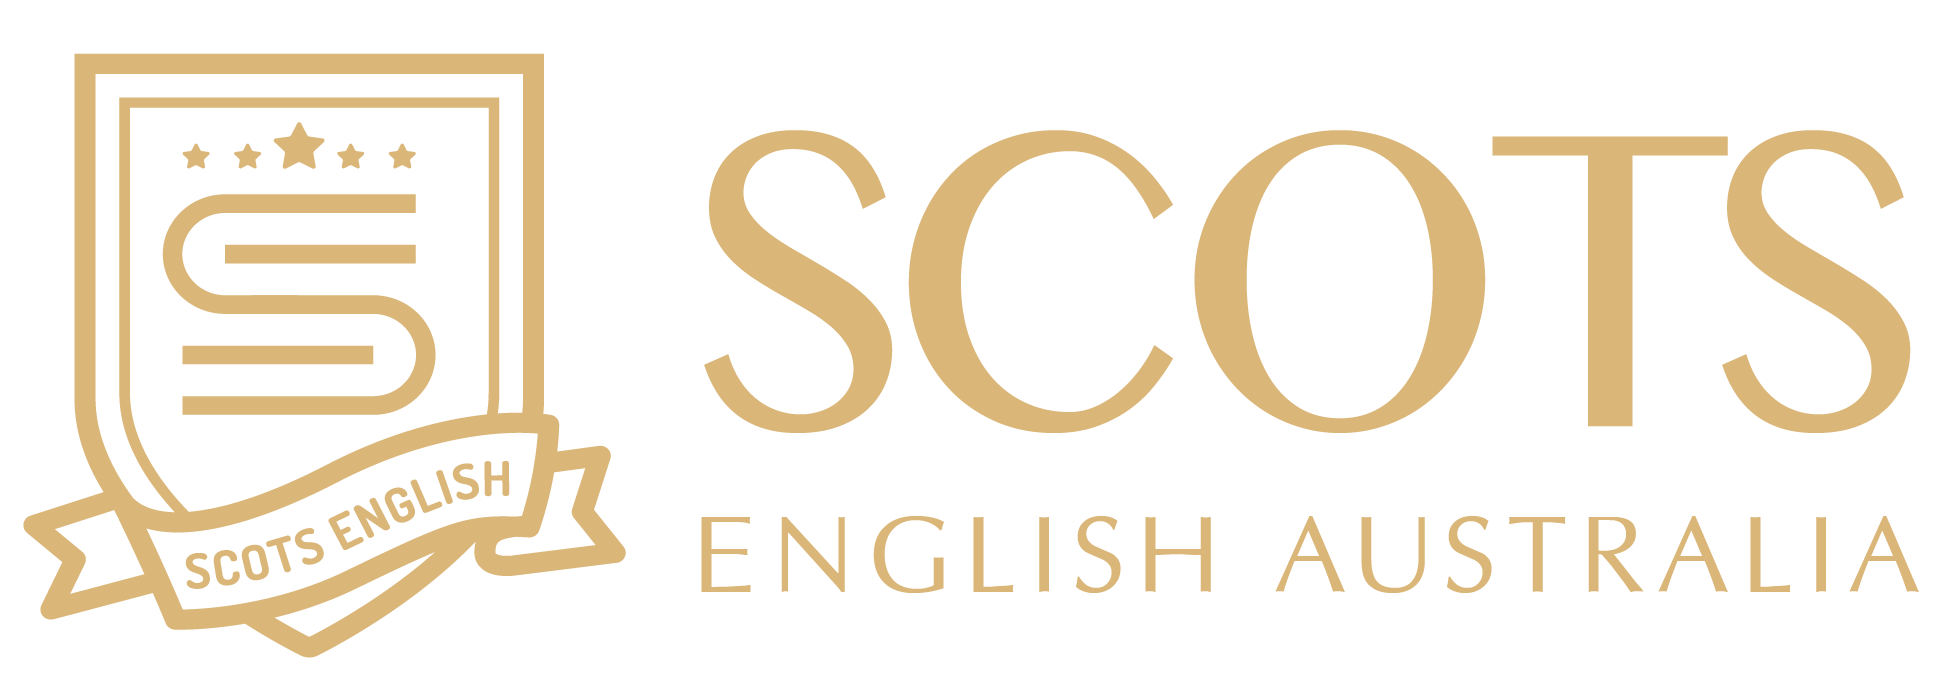 Công ty CP Scots English Australia